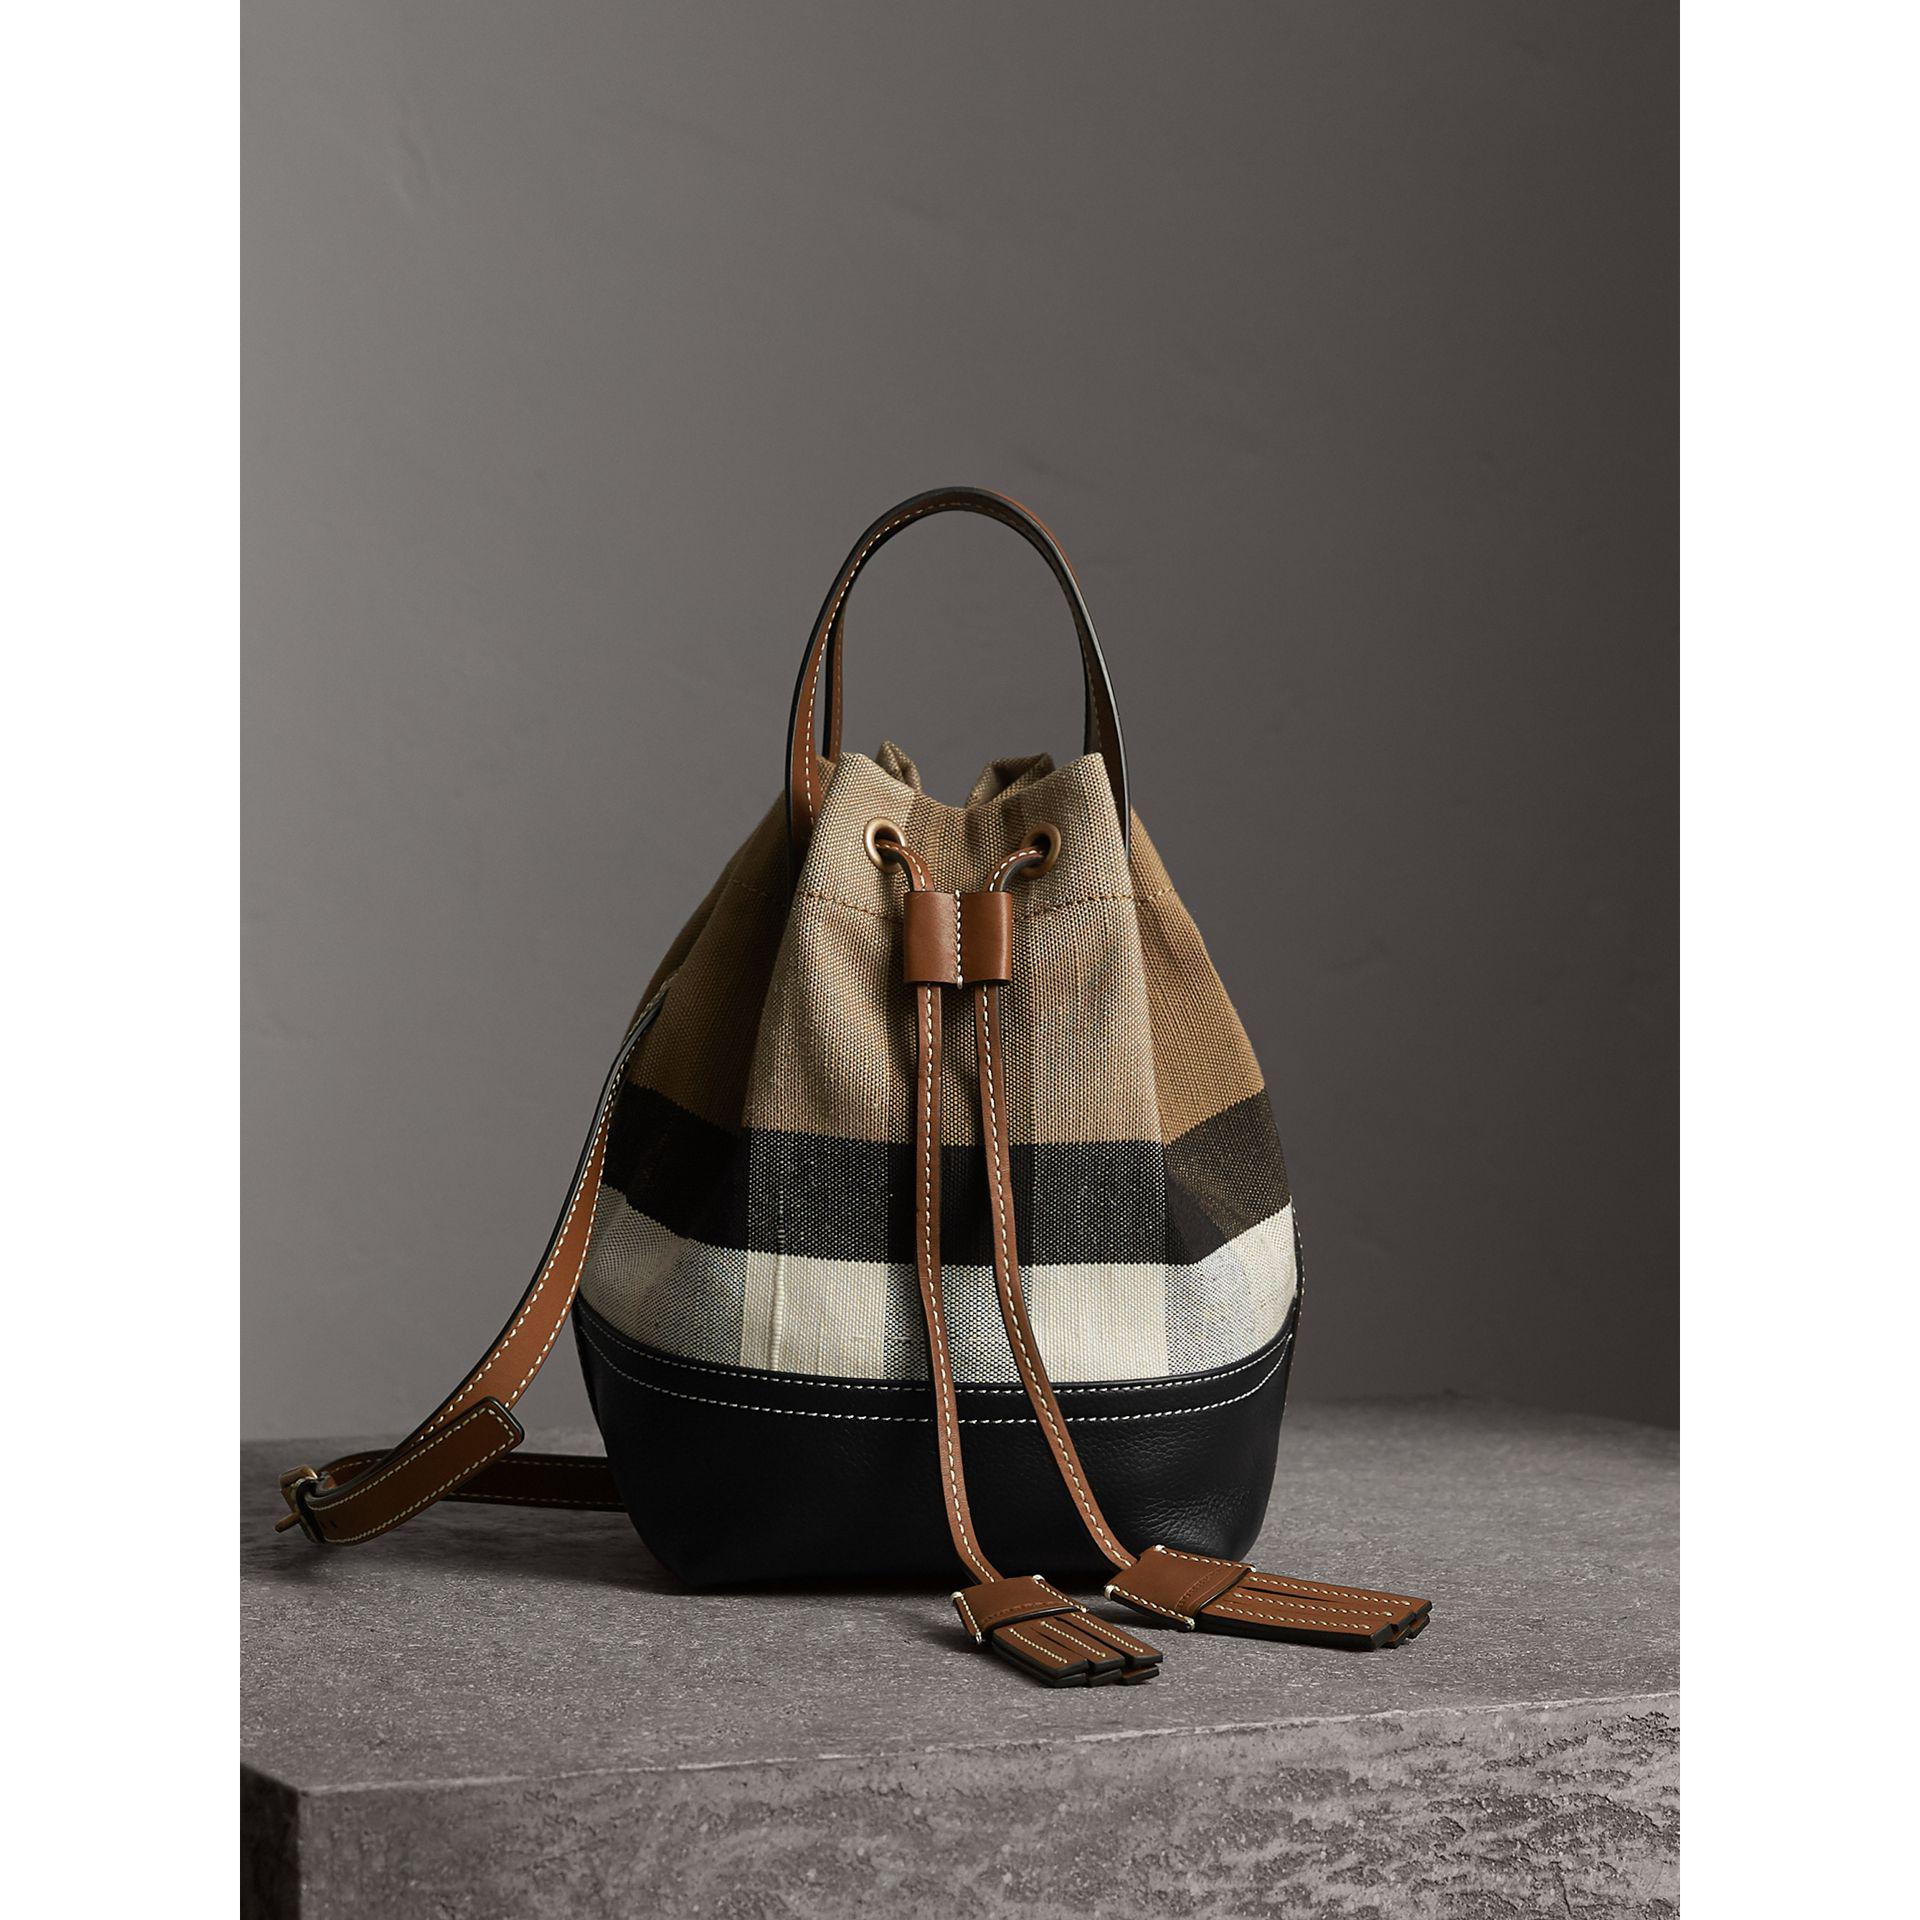 59840175714e Burberry canvas check and leather backpack fenix toulouse handball jpg  1920x1920 Burberry leather duffel with